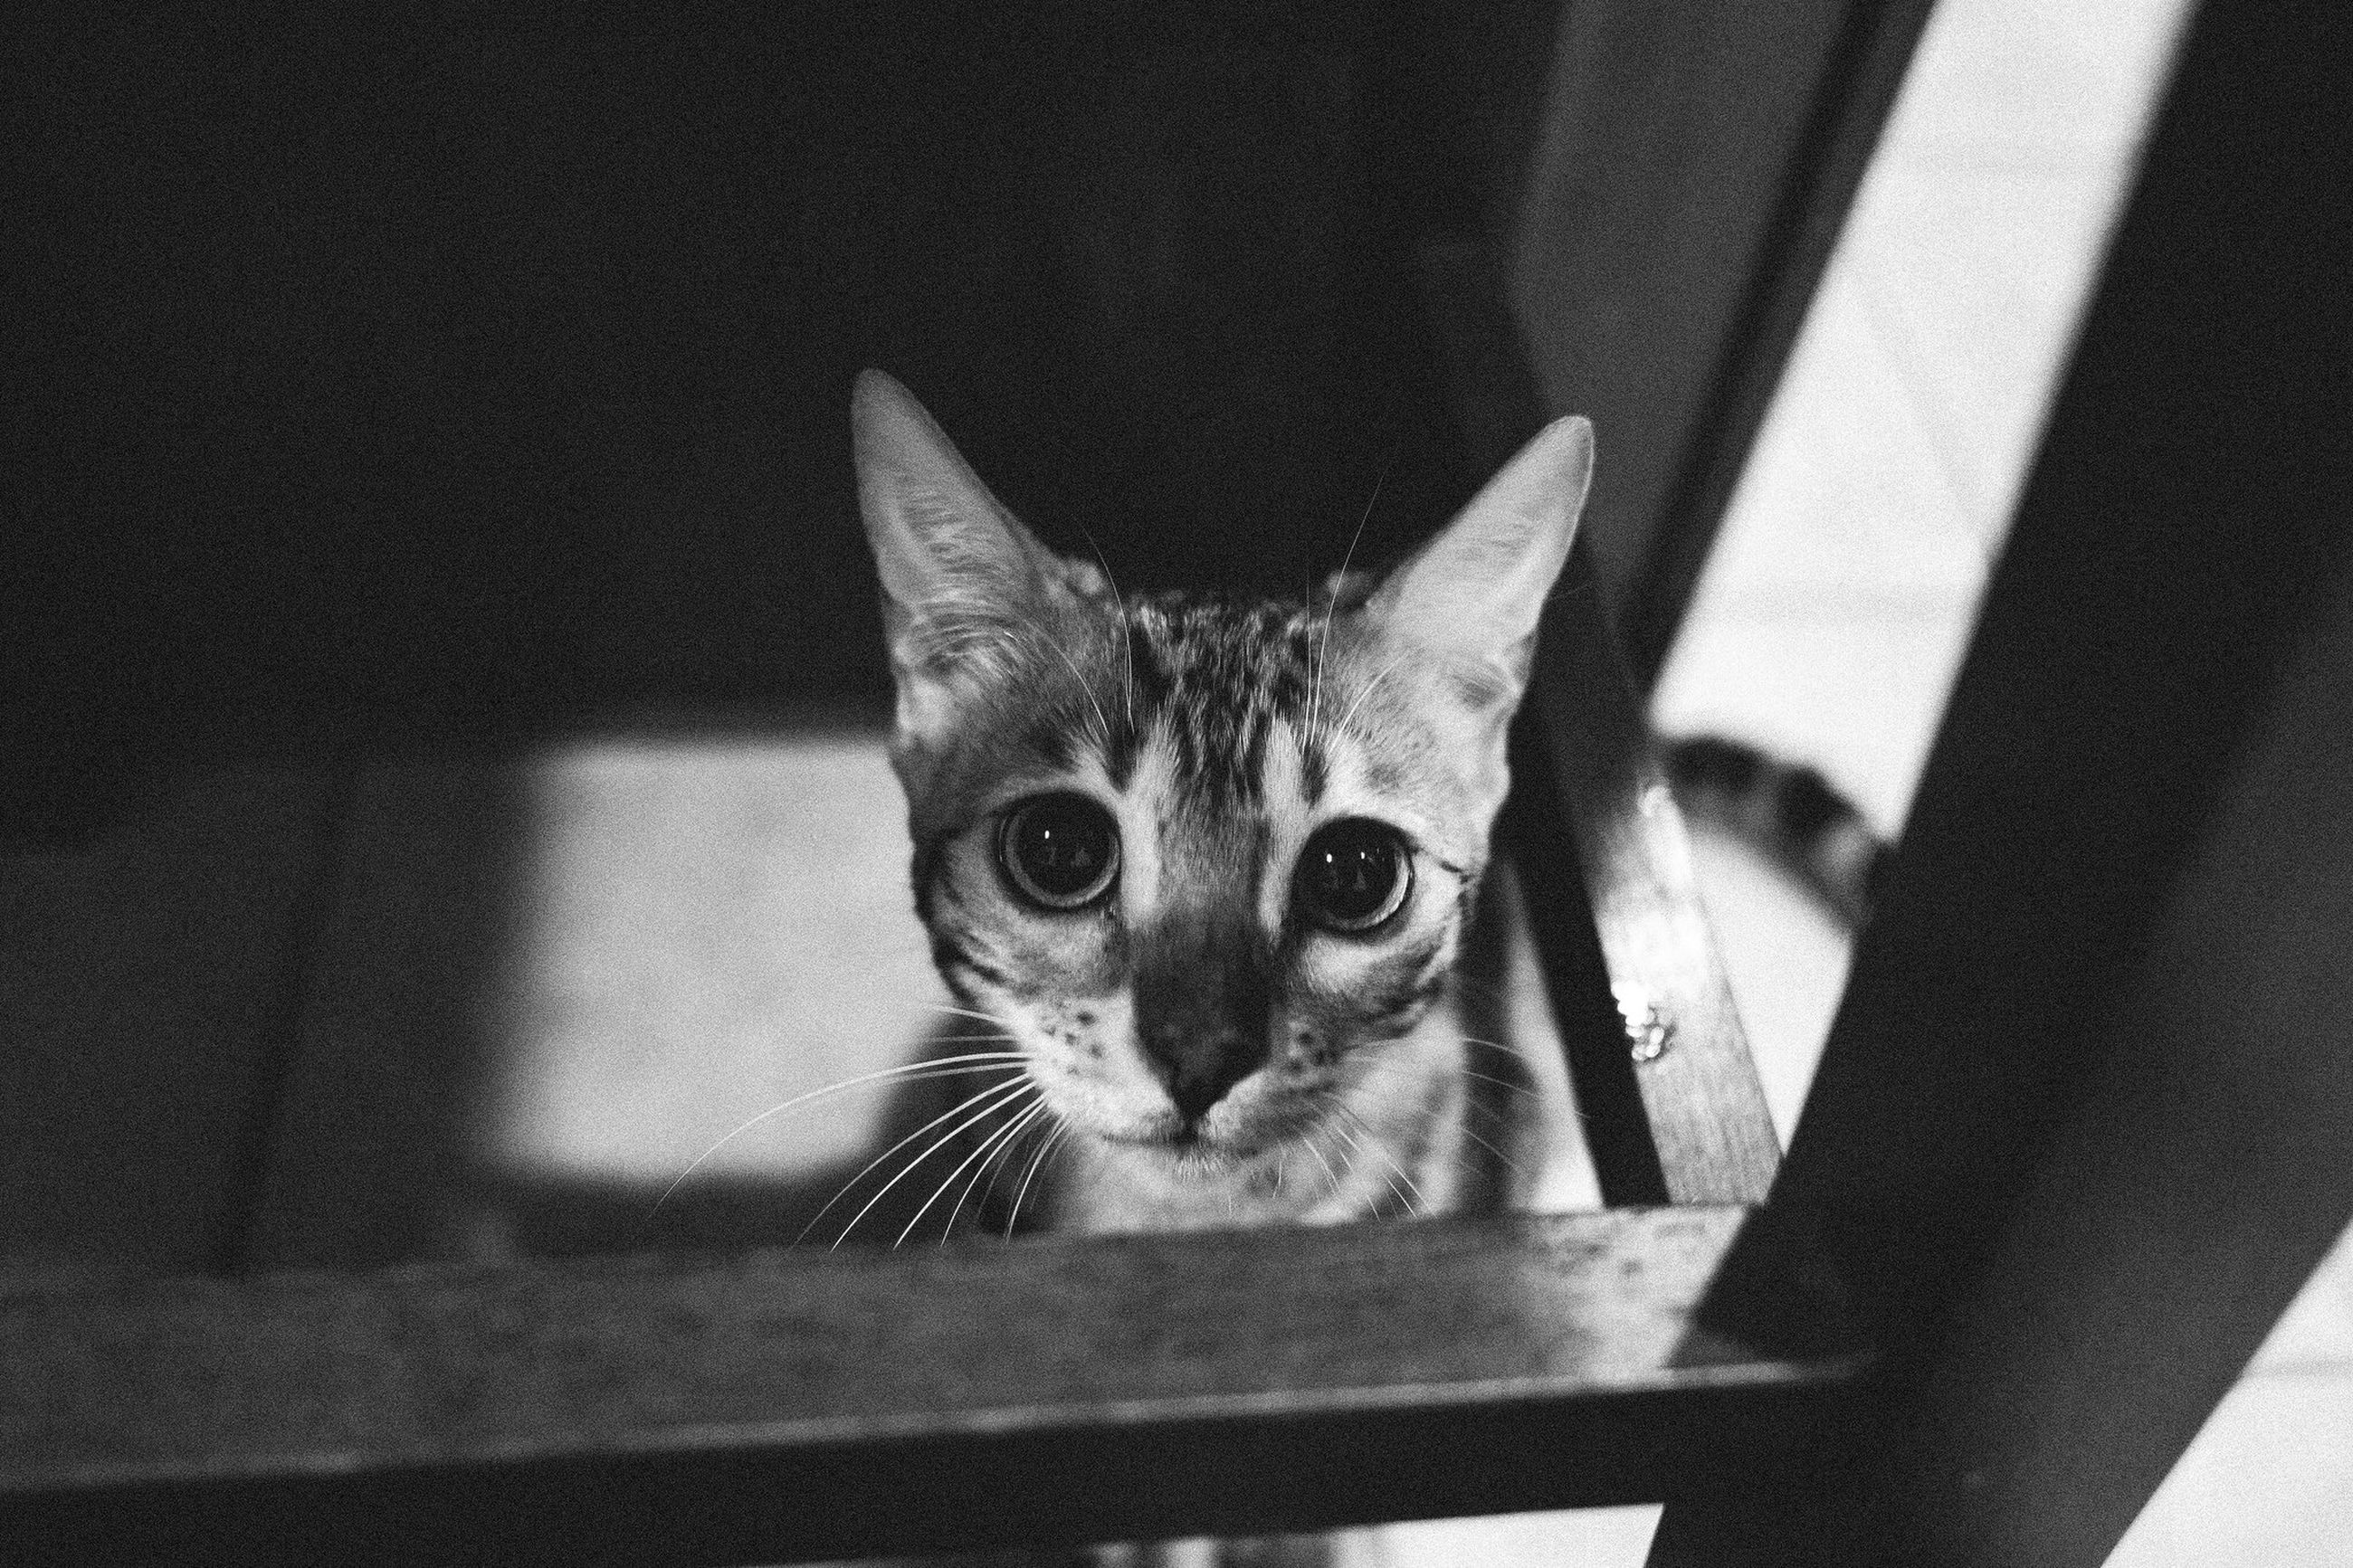 pets, indoors, domestic animals, domestic cat, animal themes, cat, one animal, looking at camera, portrait, mammal, feline, whisker, staring, home interior, close-up, high angle view, animal head, alertness, kitten, animal eye